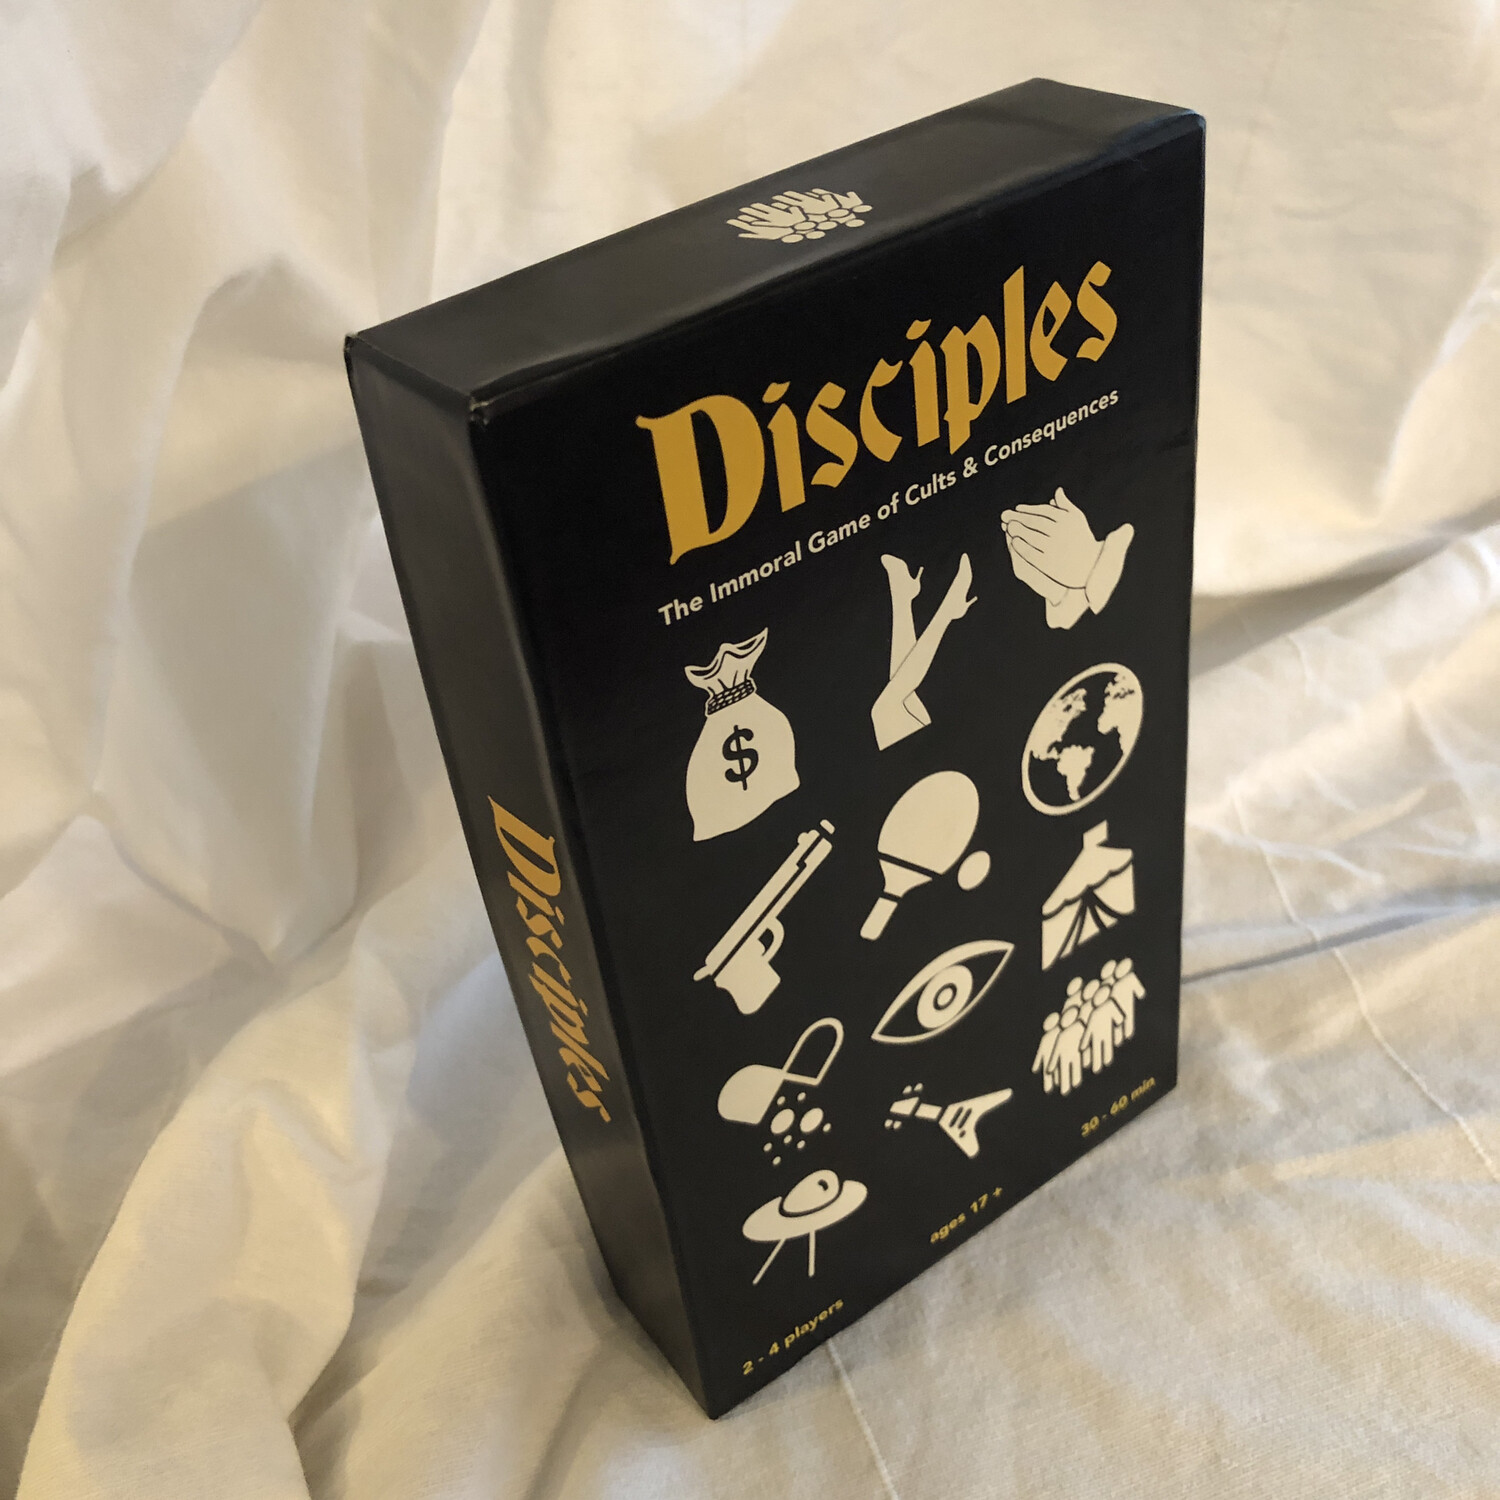 Disciples - The Game